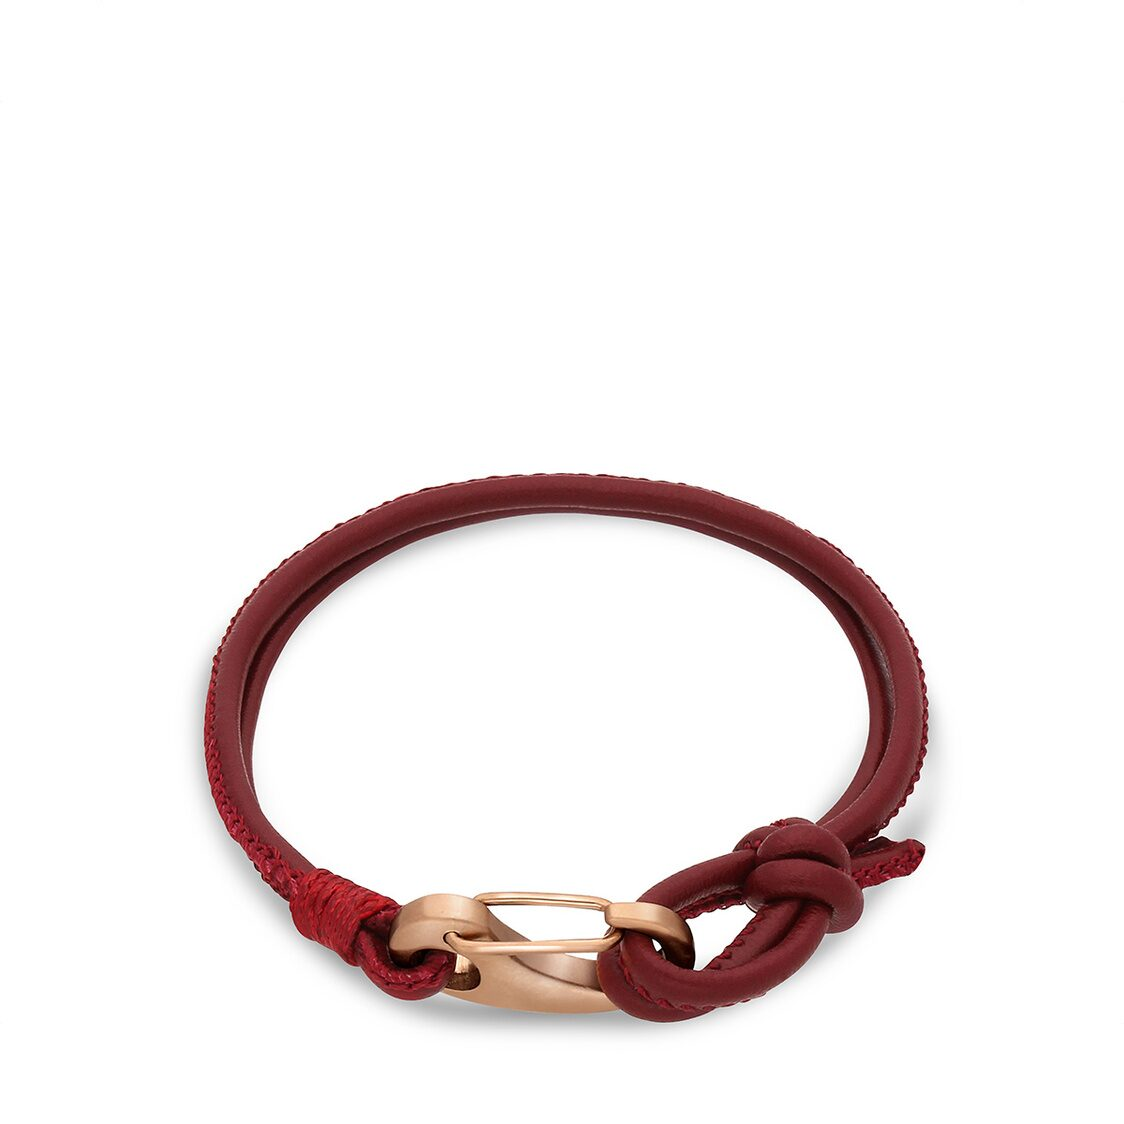 Ron Bracelet - Burgundy Leather